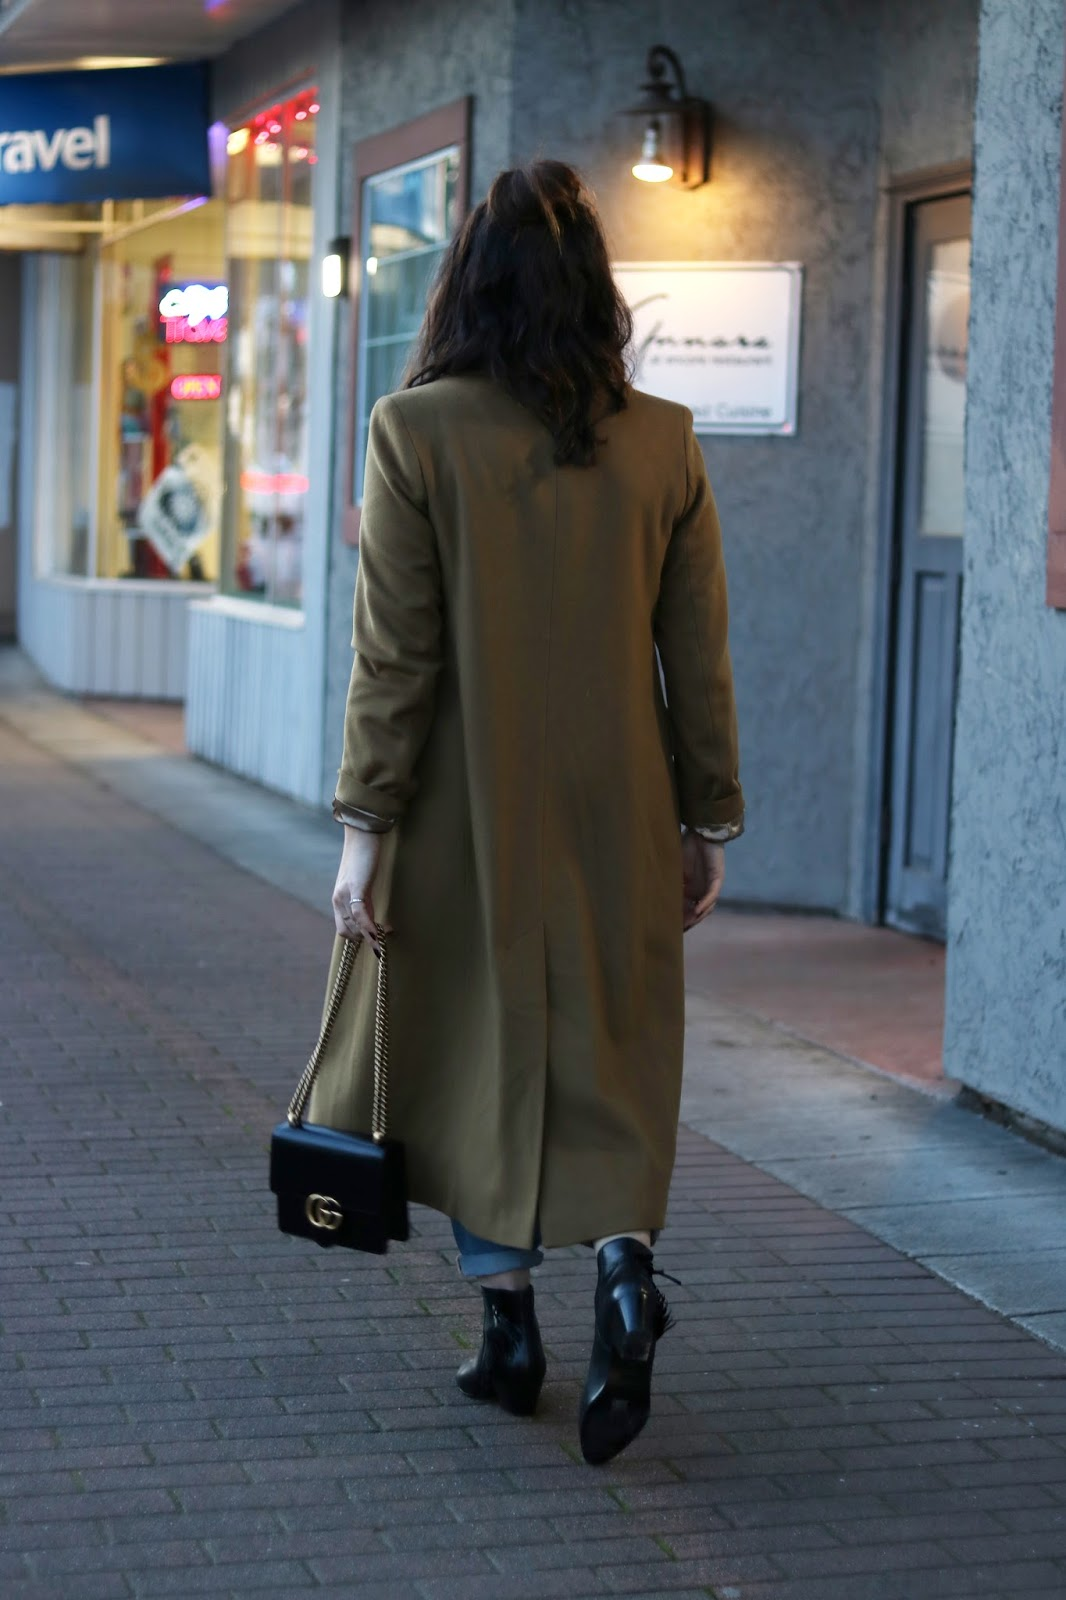 winter weekend outfit camel wool coat boyfriend jeans ankle boots vancouver  blogger gucci marmont bag 5f1aacfc75c8